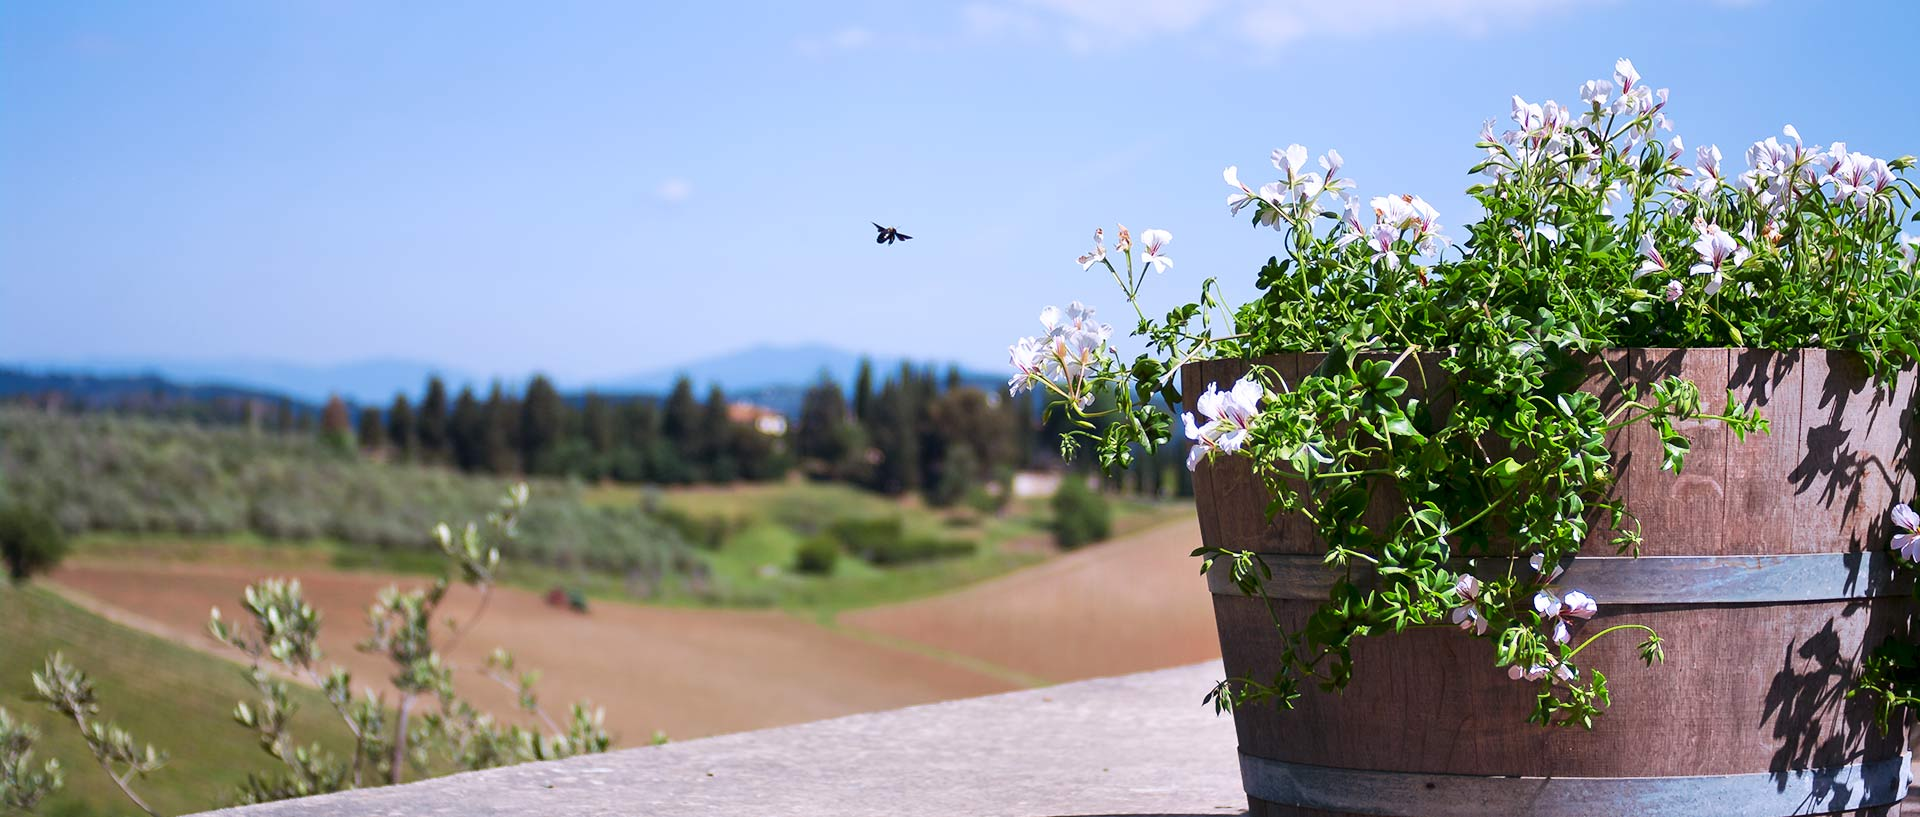 flowers and bee in Sienna, tuscany